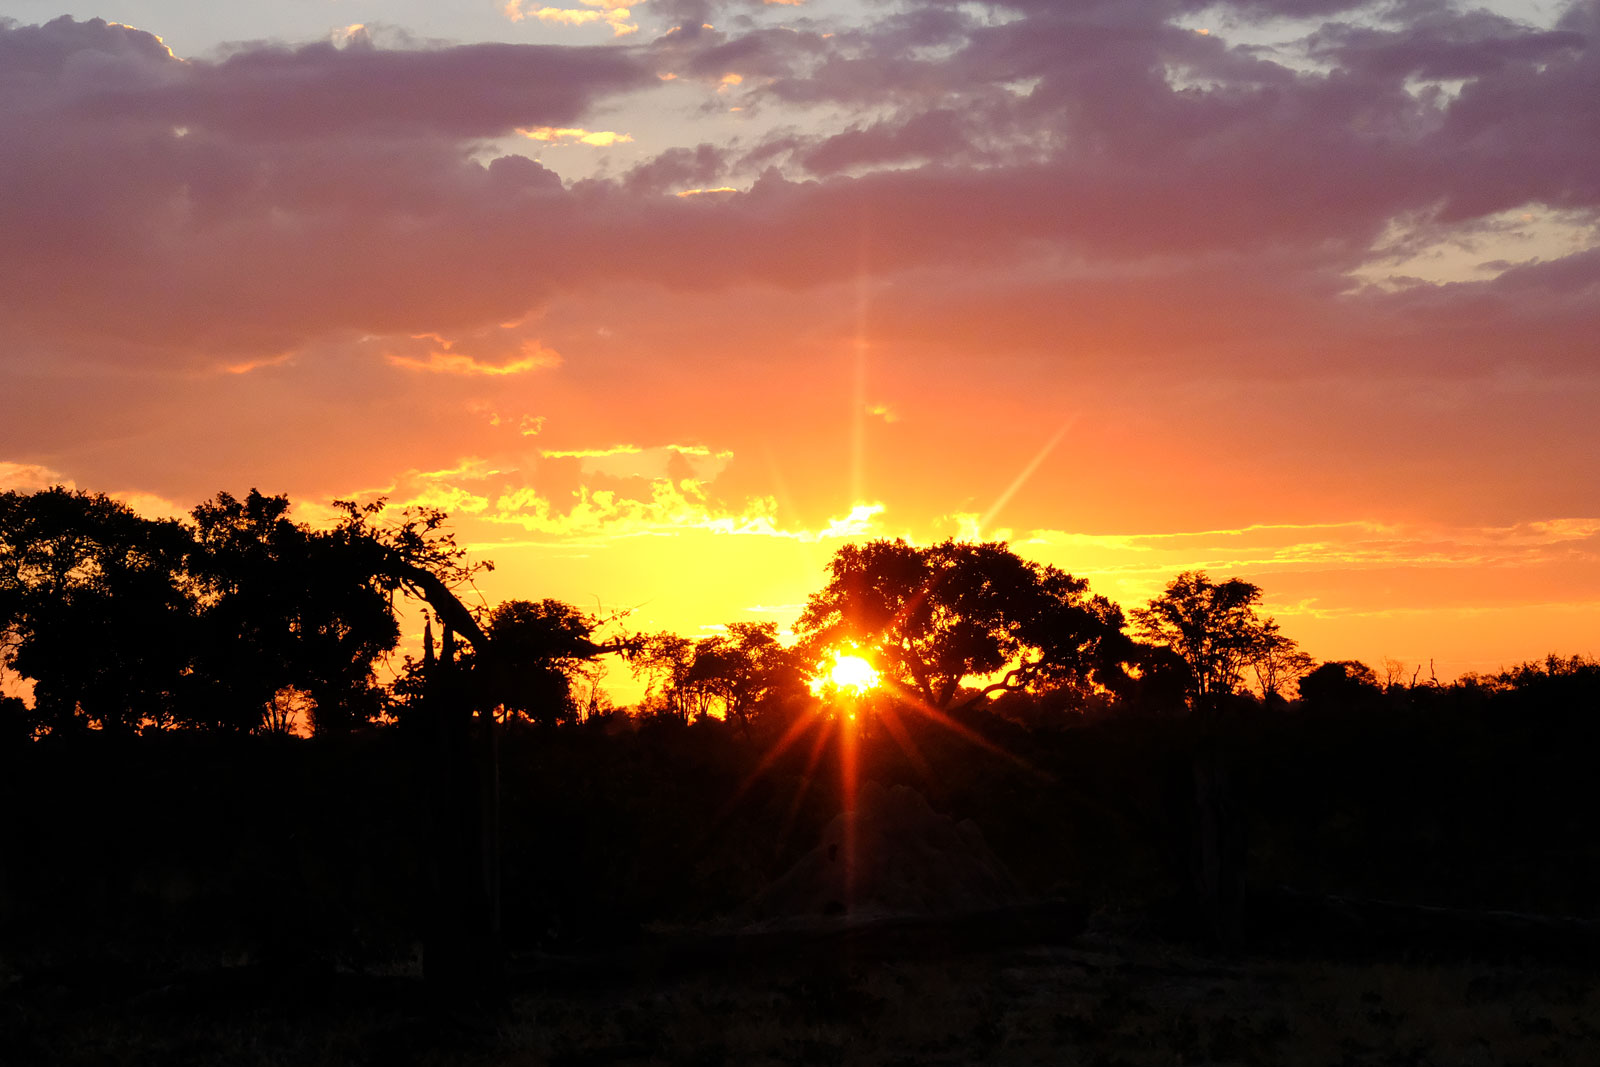 Fantastically beautiful sunset in the Okavango Delta